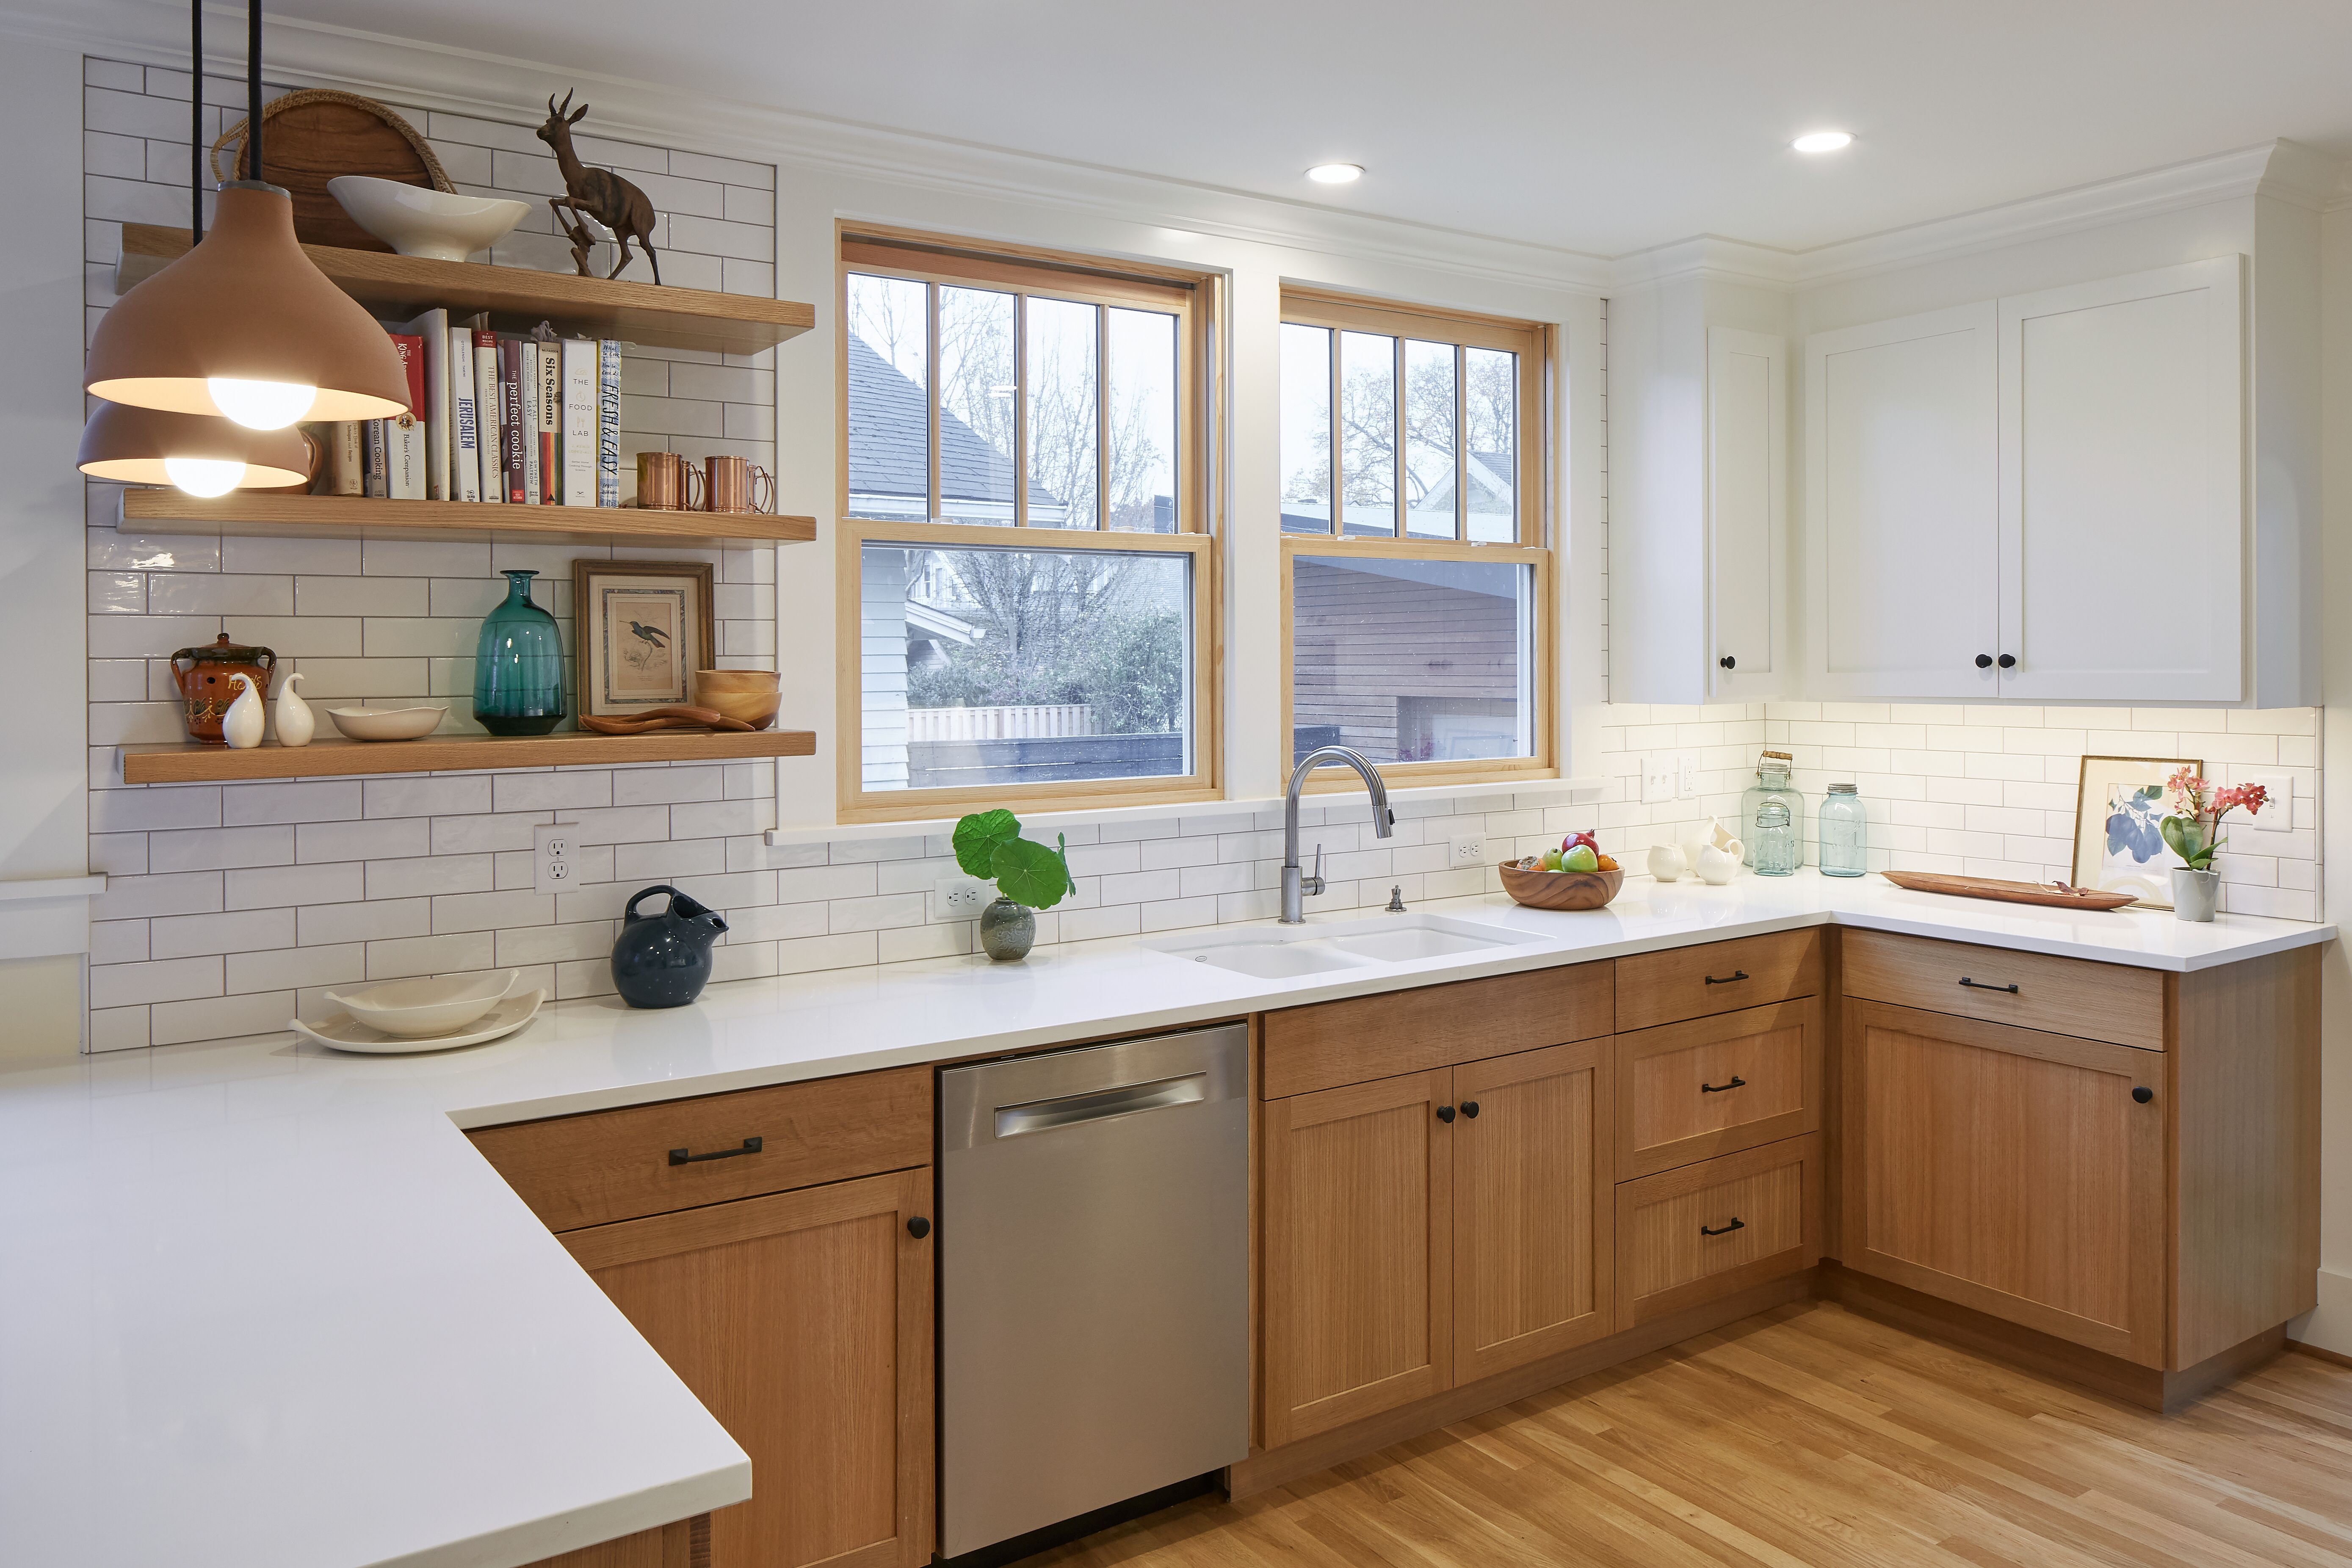 Melissa Mccall Design Portland Oregon Best Kitchen Cabinets Small Kitchen Renovations Kitchen Cabinets